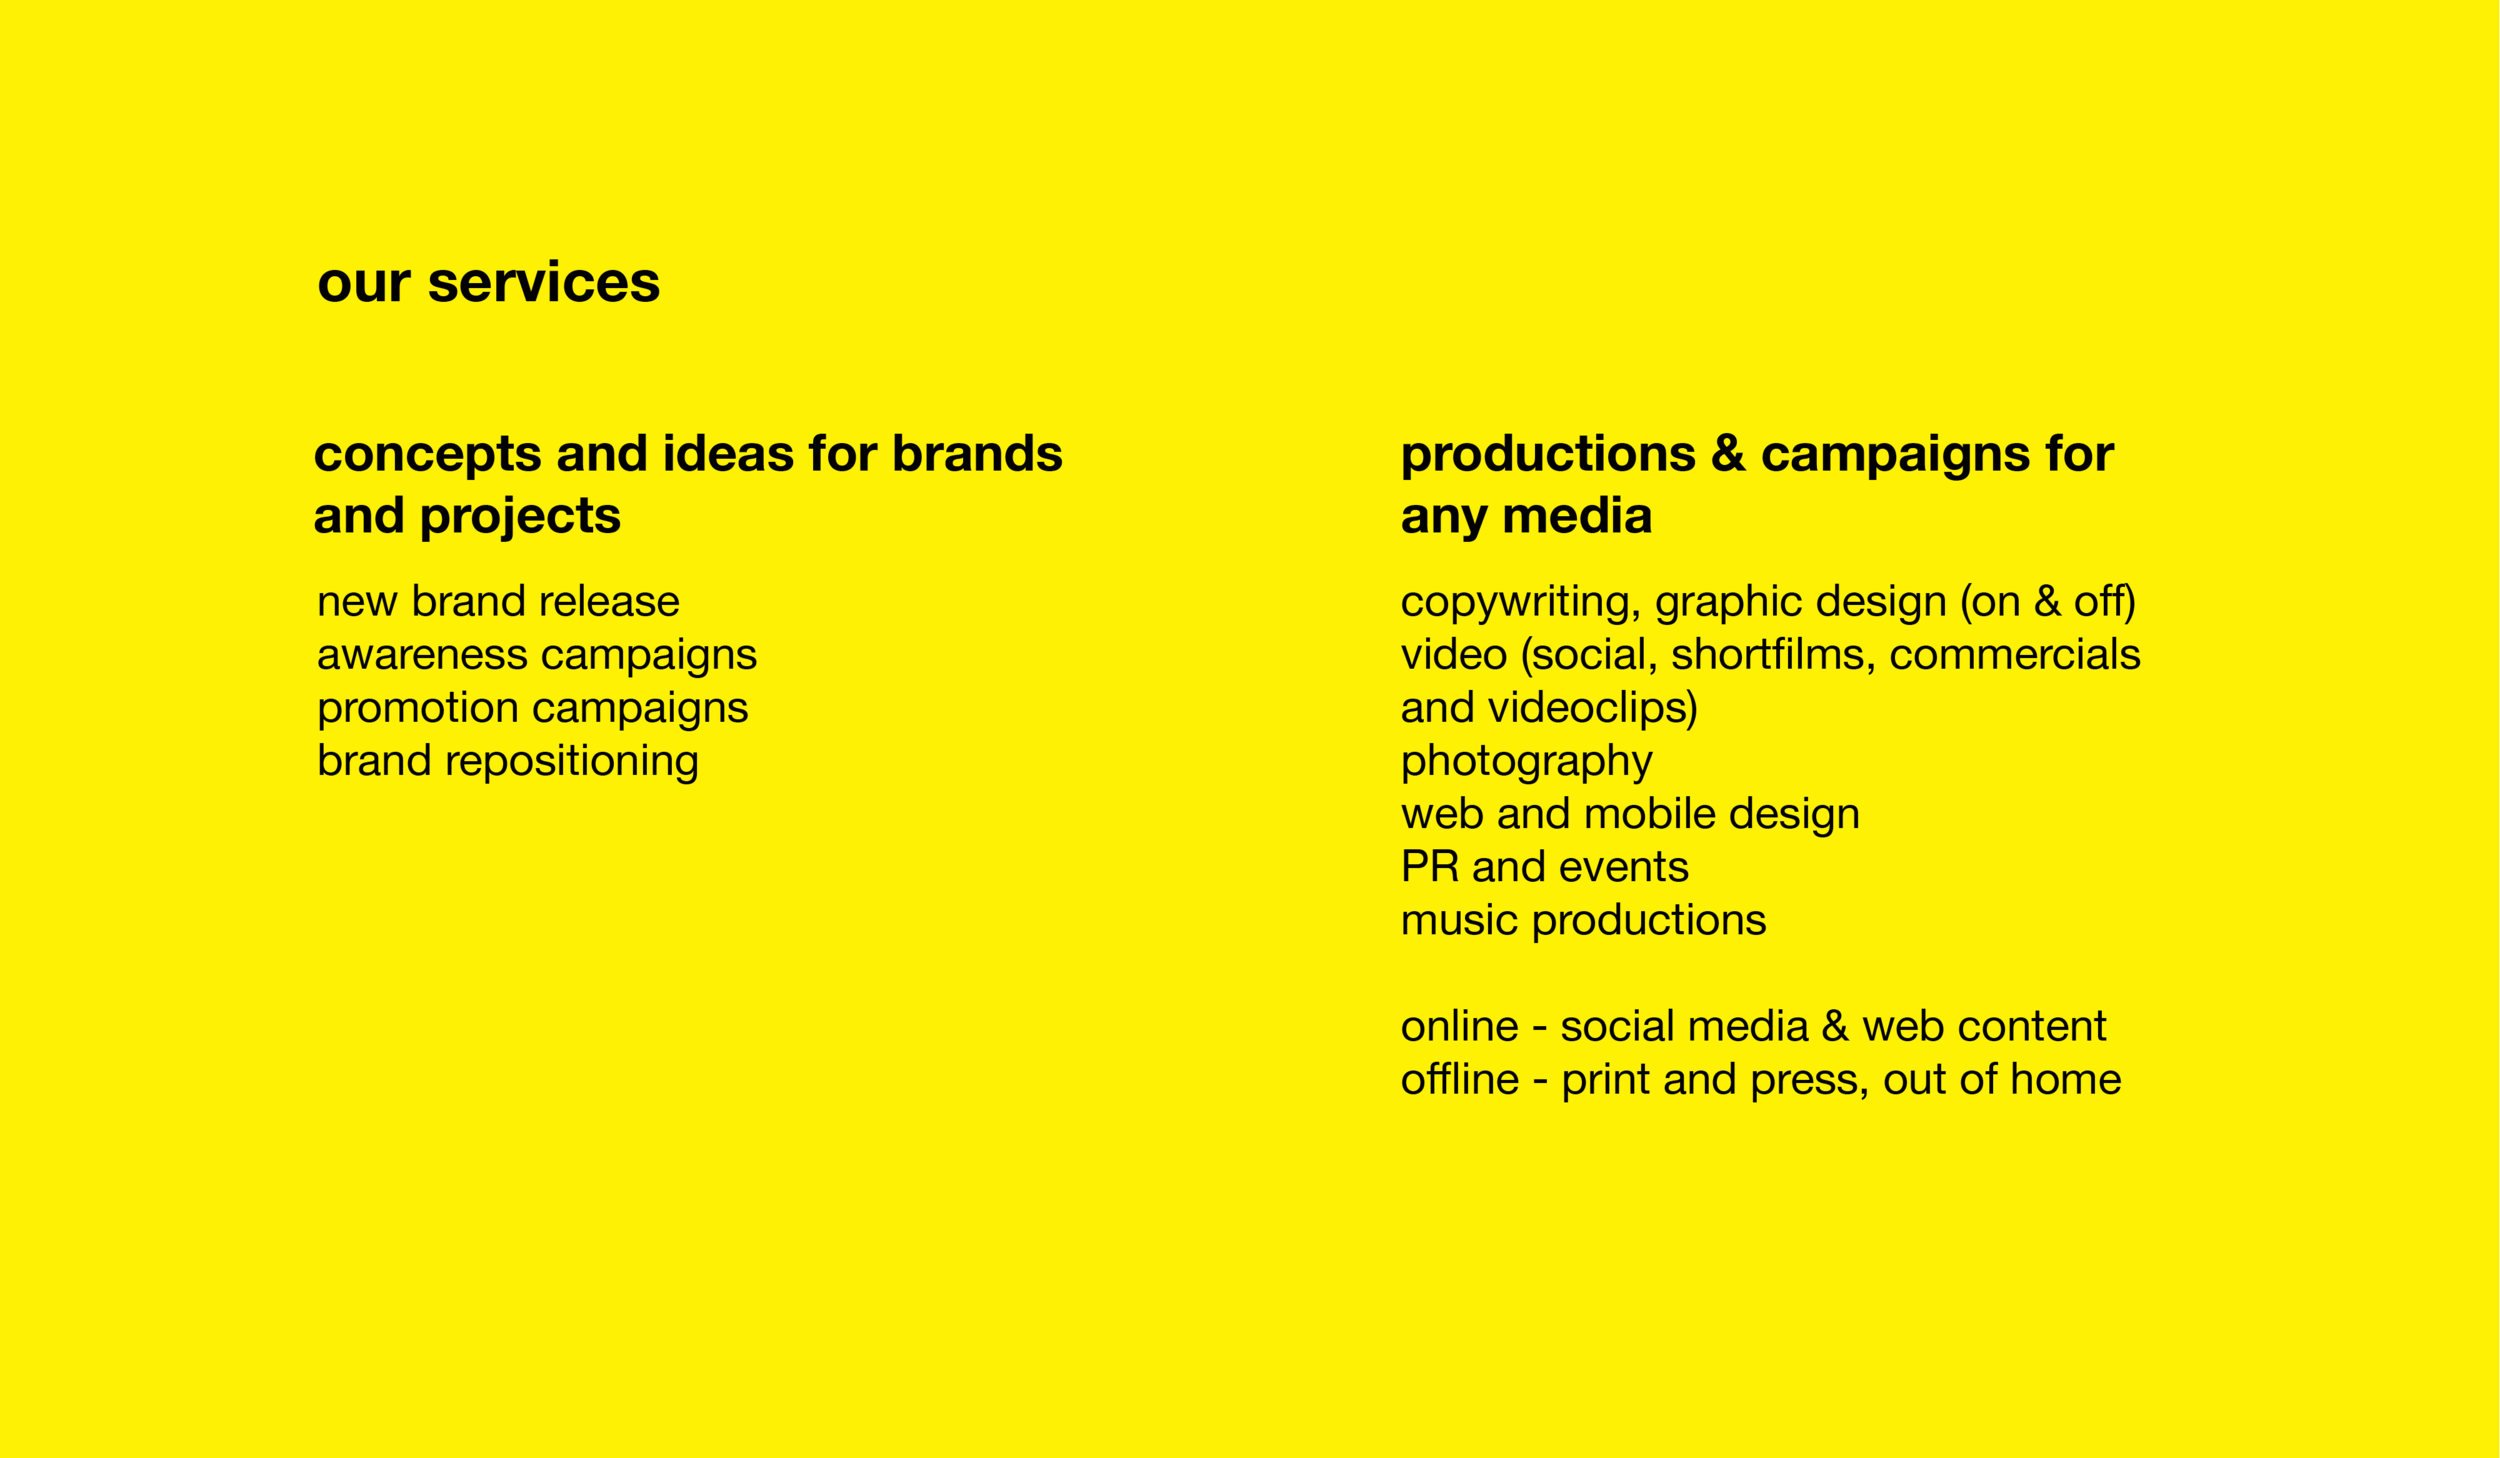 services_yellow.png